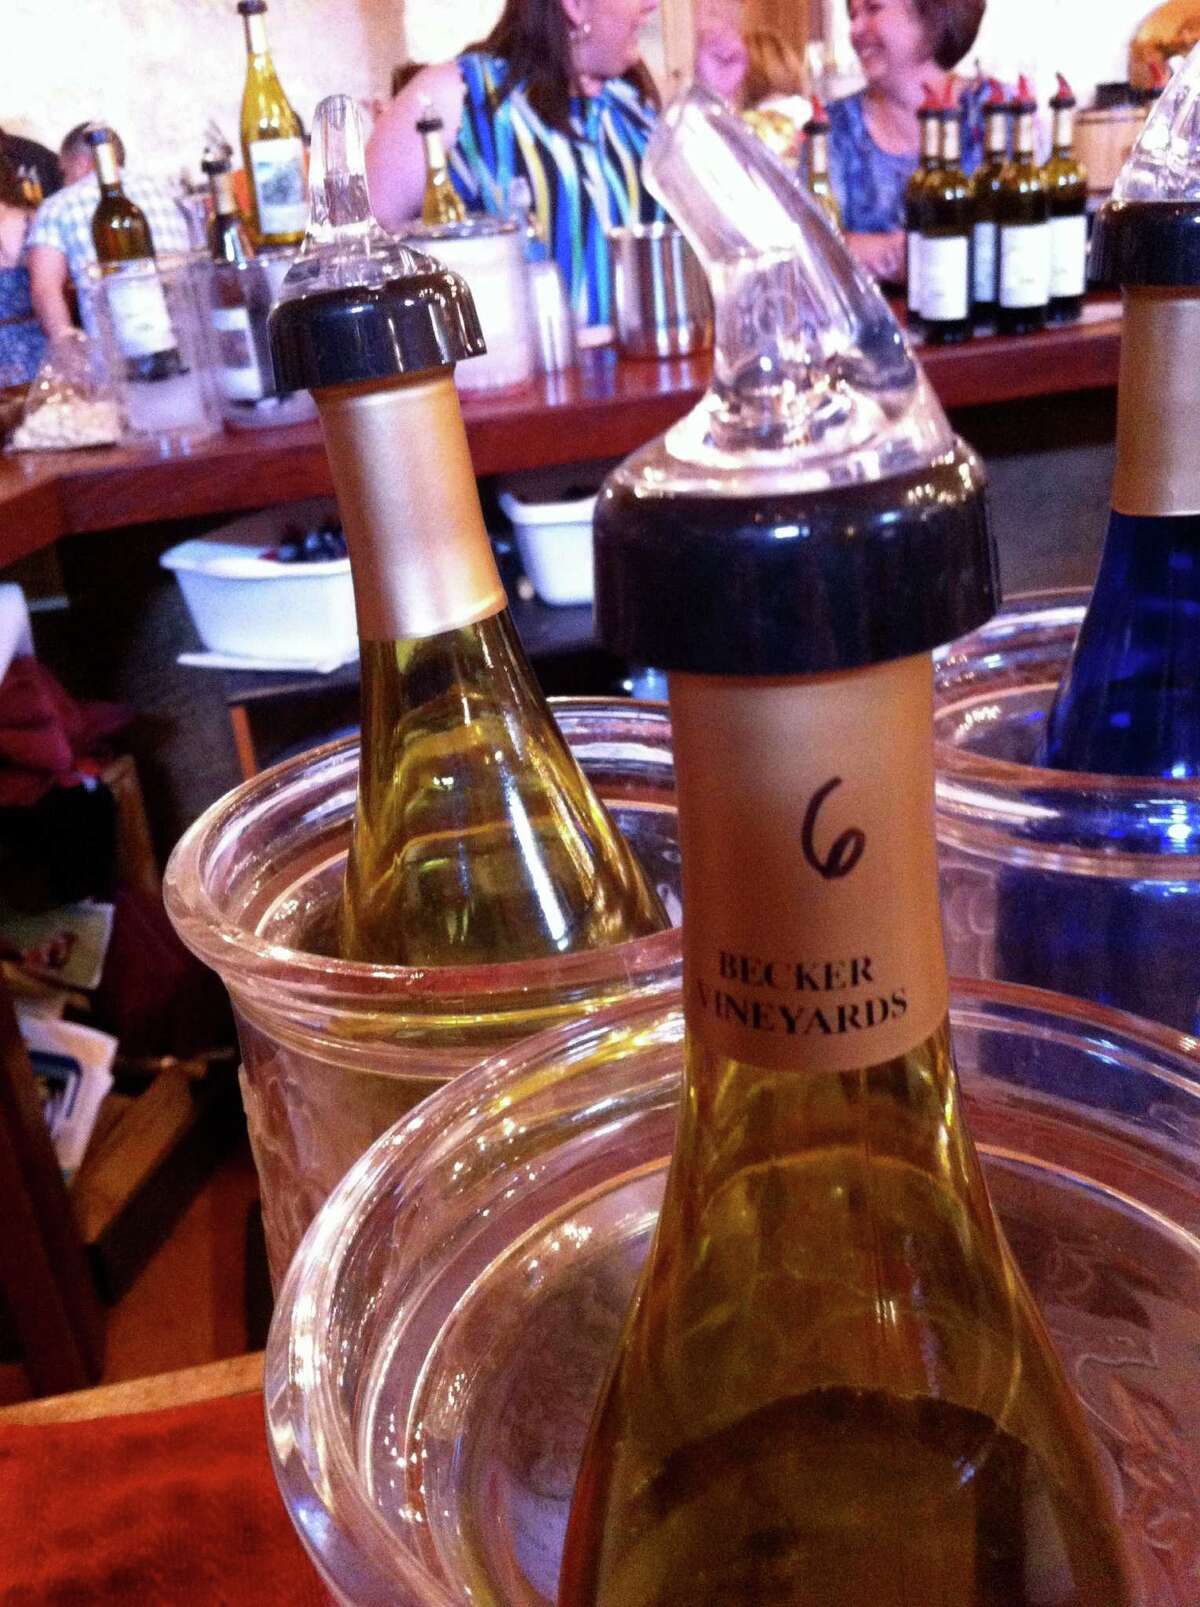 Chilled bottles of wine are ready to be sampled in the popular Becker Vineyards tasting room.